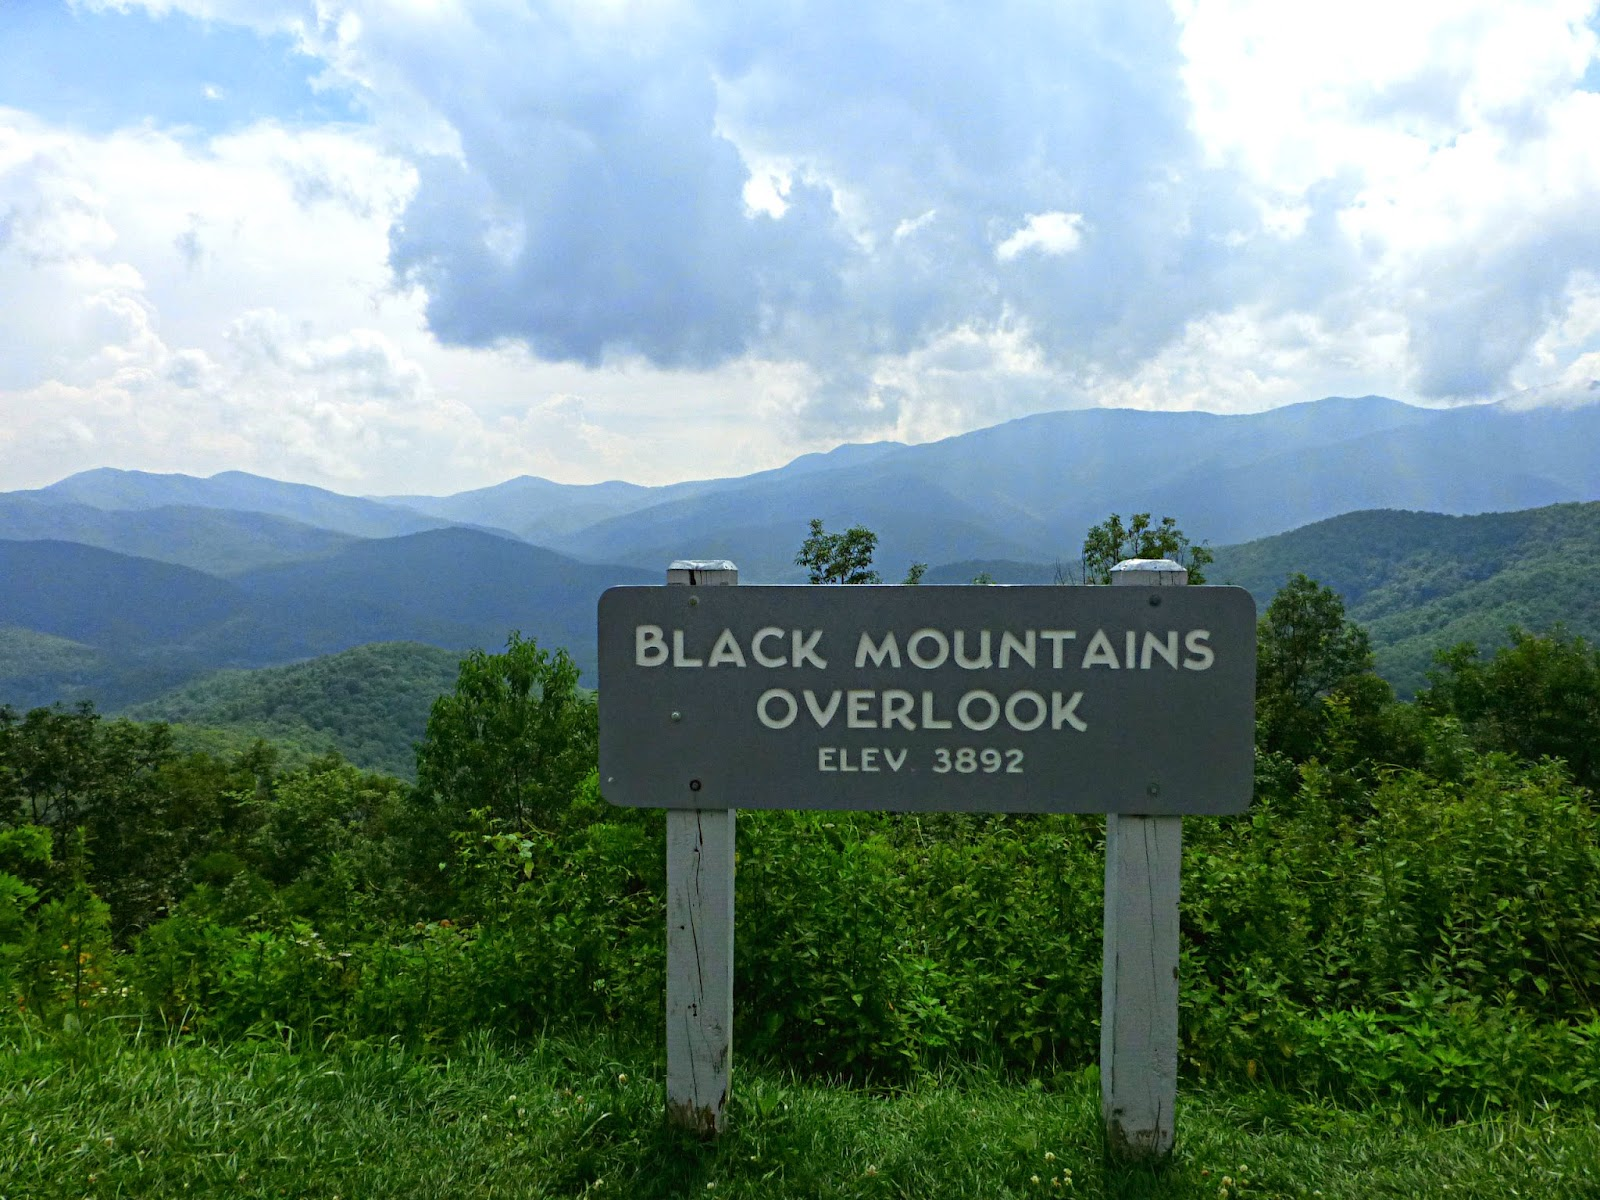 Black Mountains Overlook